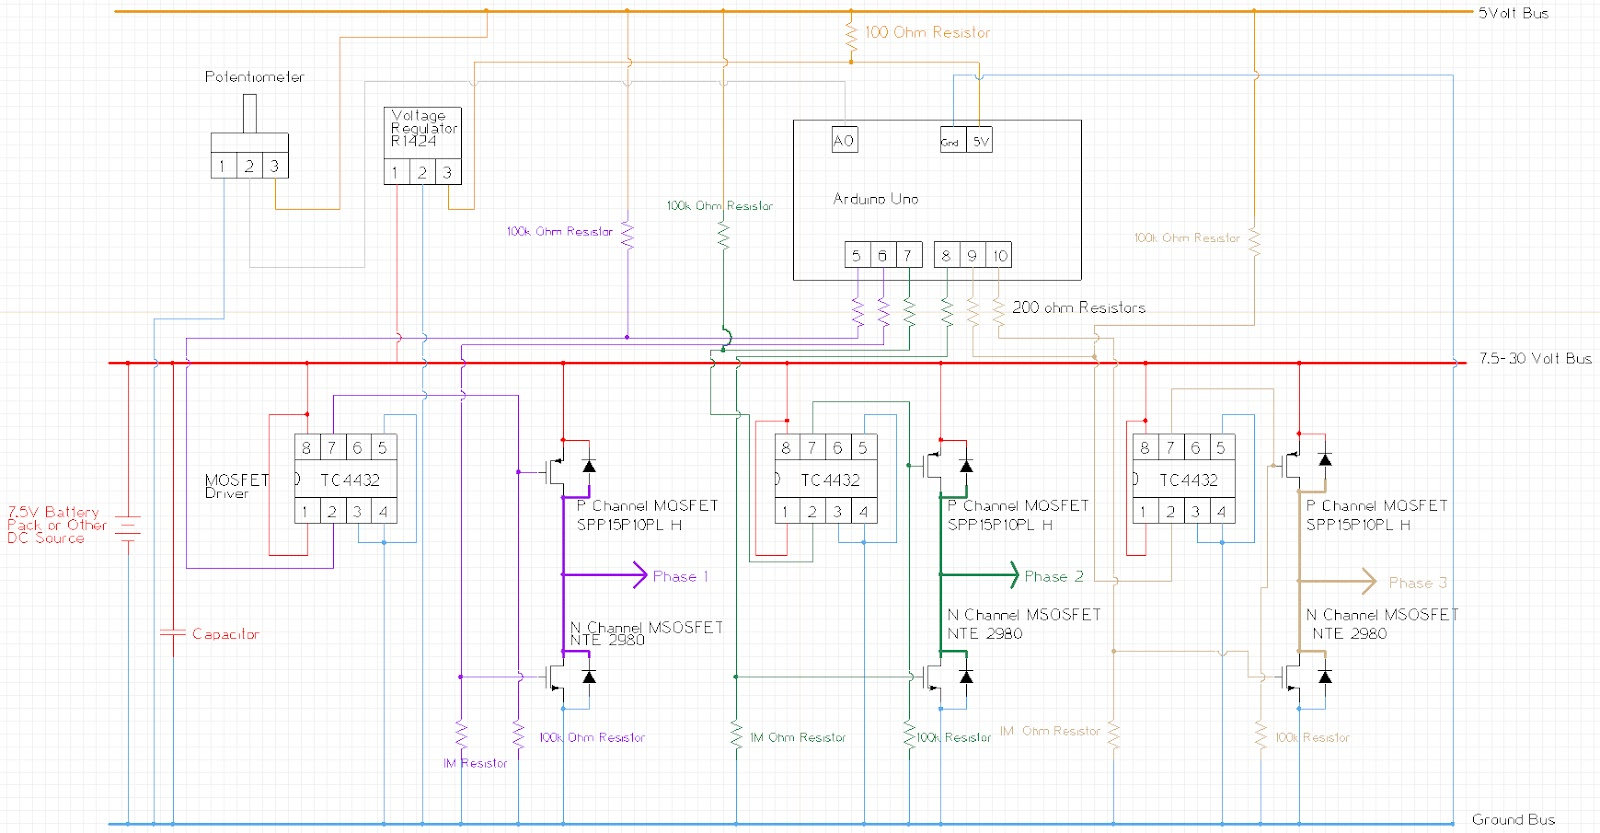 3 phase ups wiring diagram circuit ac for inverter get free image about